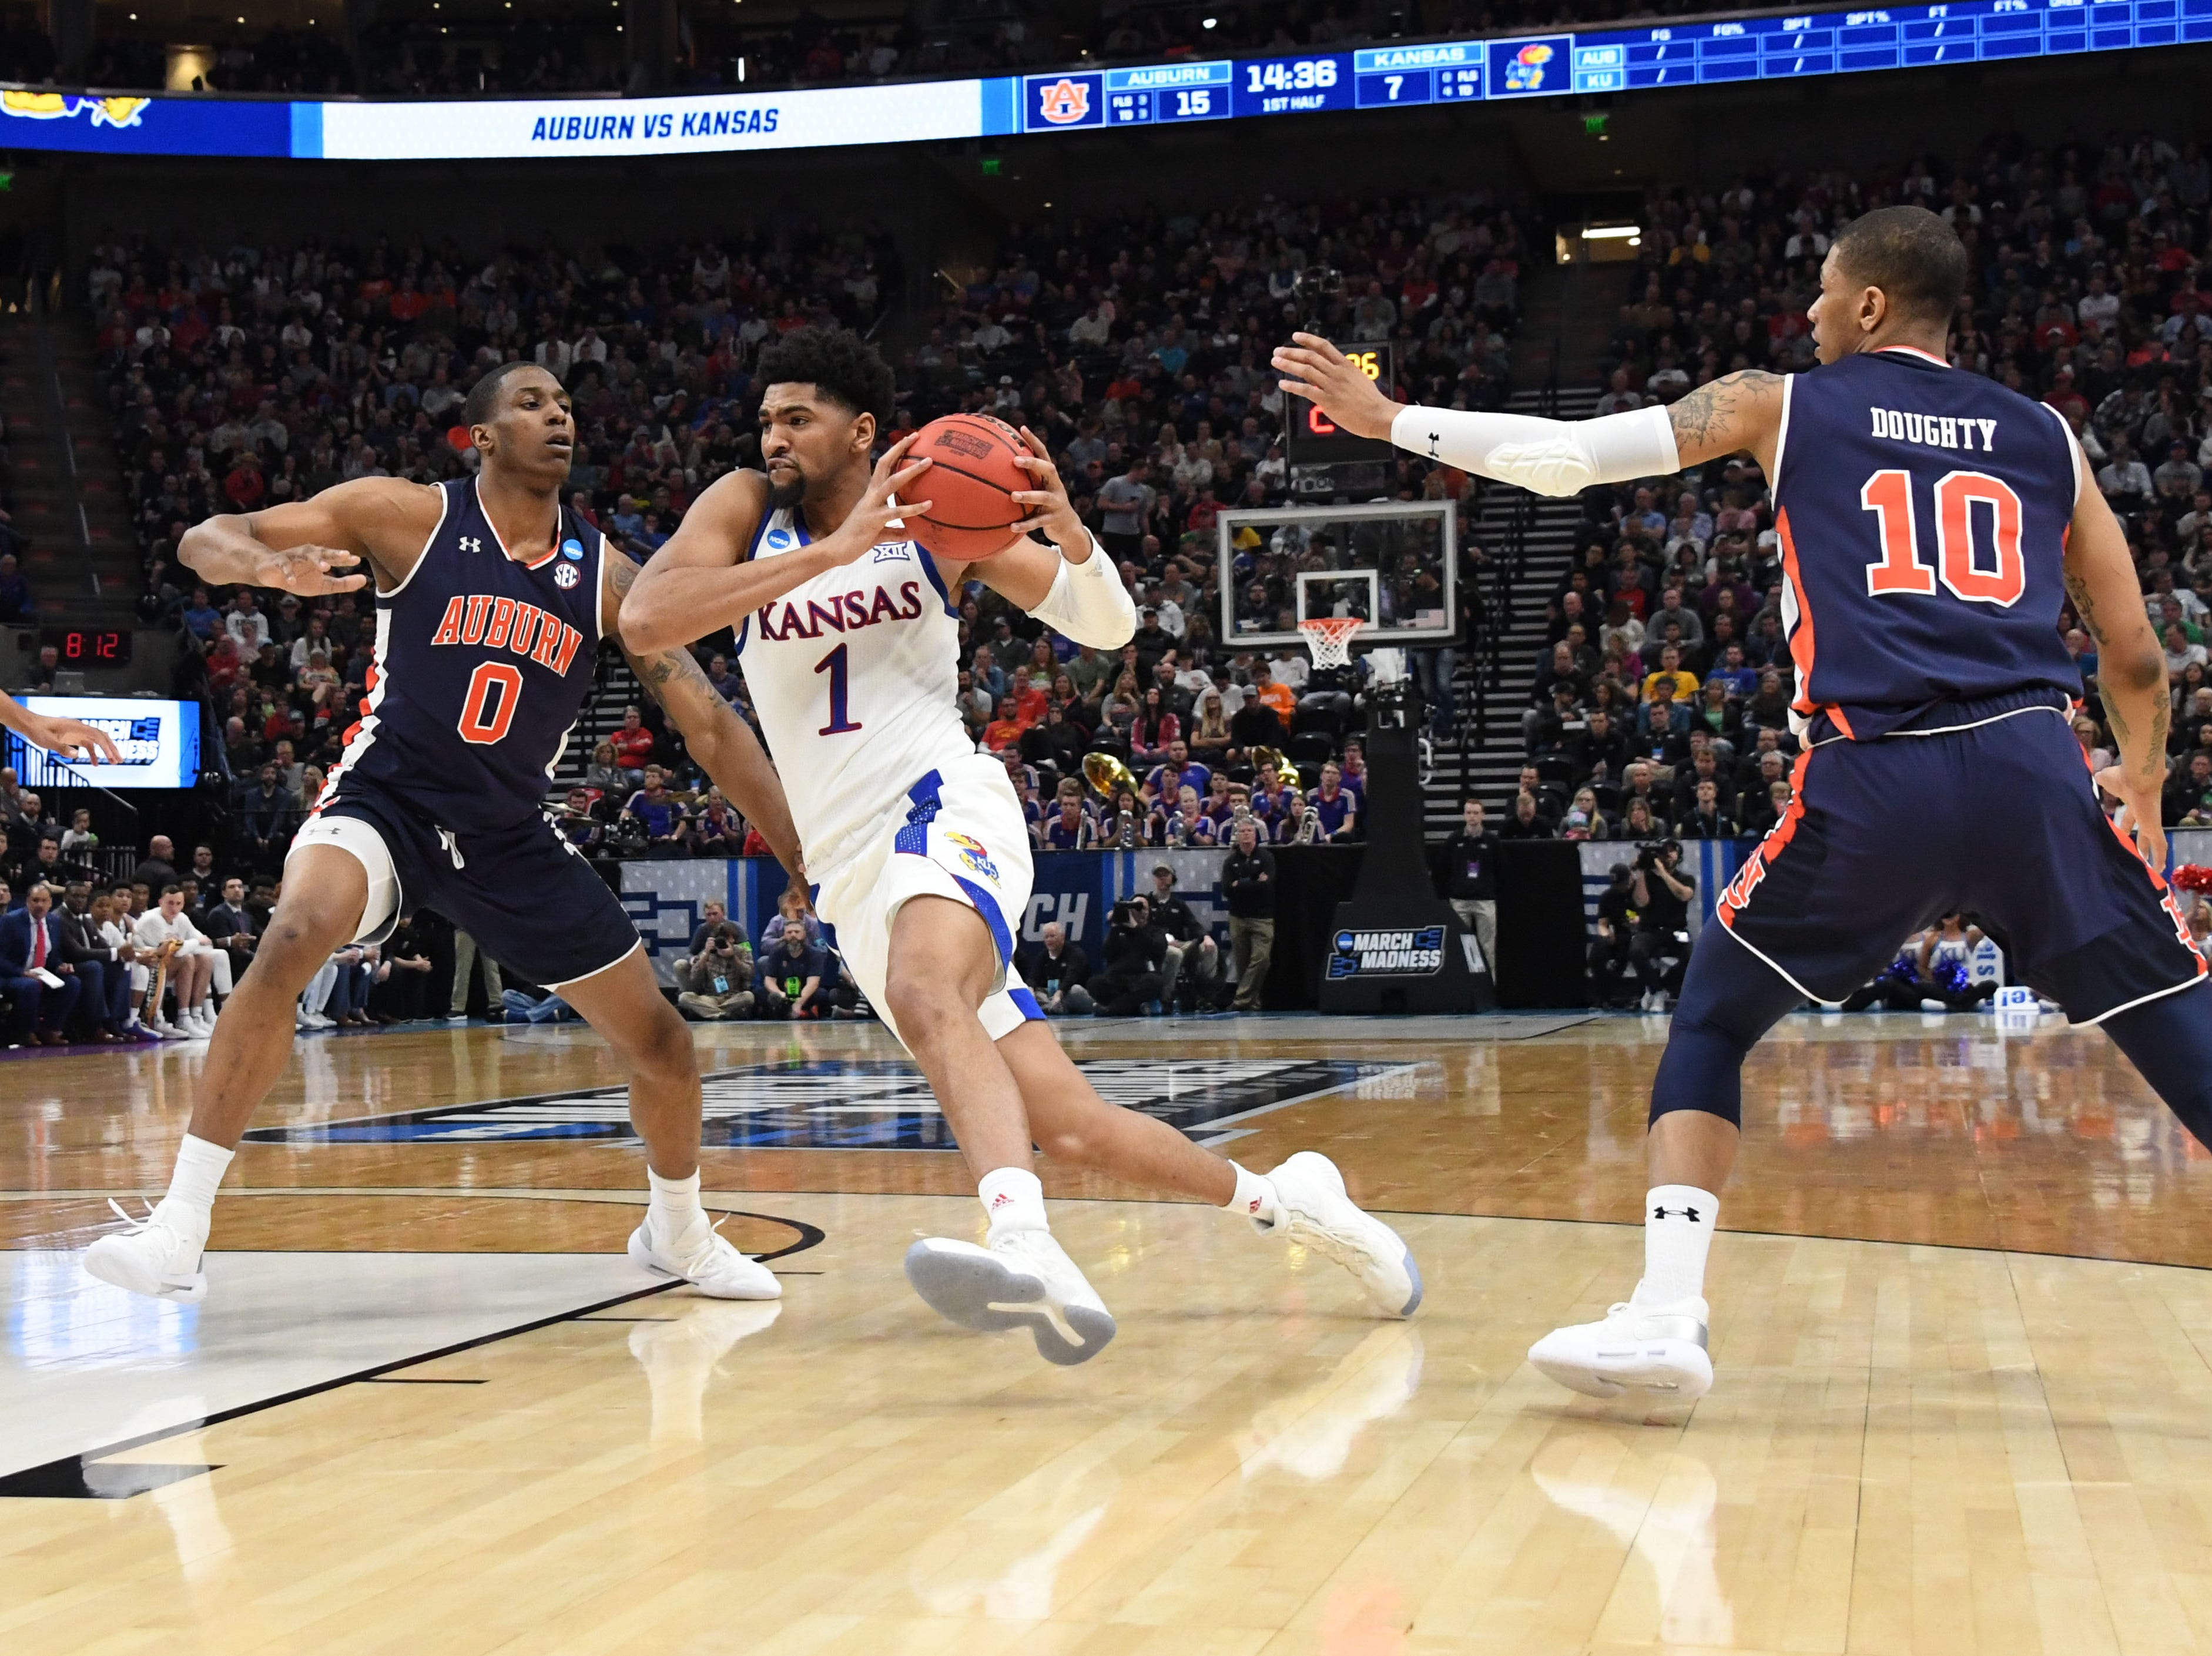 Mar 23, 2019; Salt Lake City, UT, USA; Kansas Jayhawks forward Dedric Lawson (1) drives through Auburn Tigers forward Horace Spencer (0) and guard Samir Doughty (10) during the first half in the second round of the 2019 NCAA Tournament at Vivint Smart Home Arena. Mandatory Credit: Kirby Lee-USA TODAY Sports